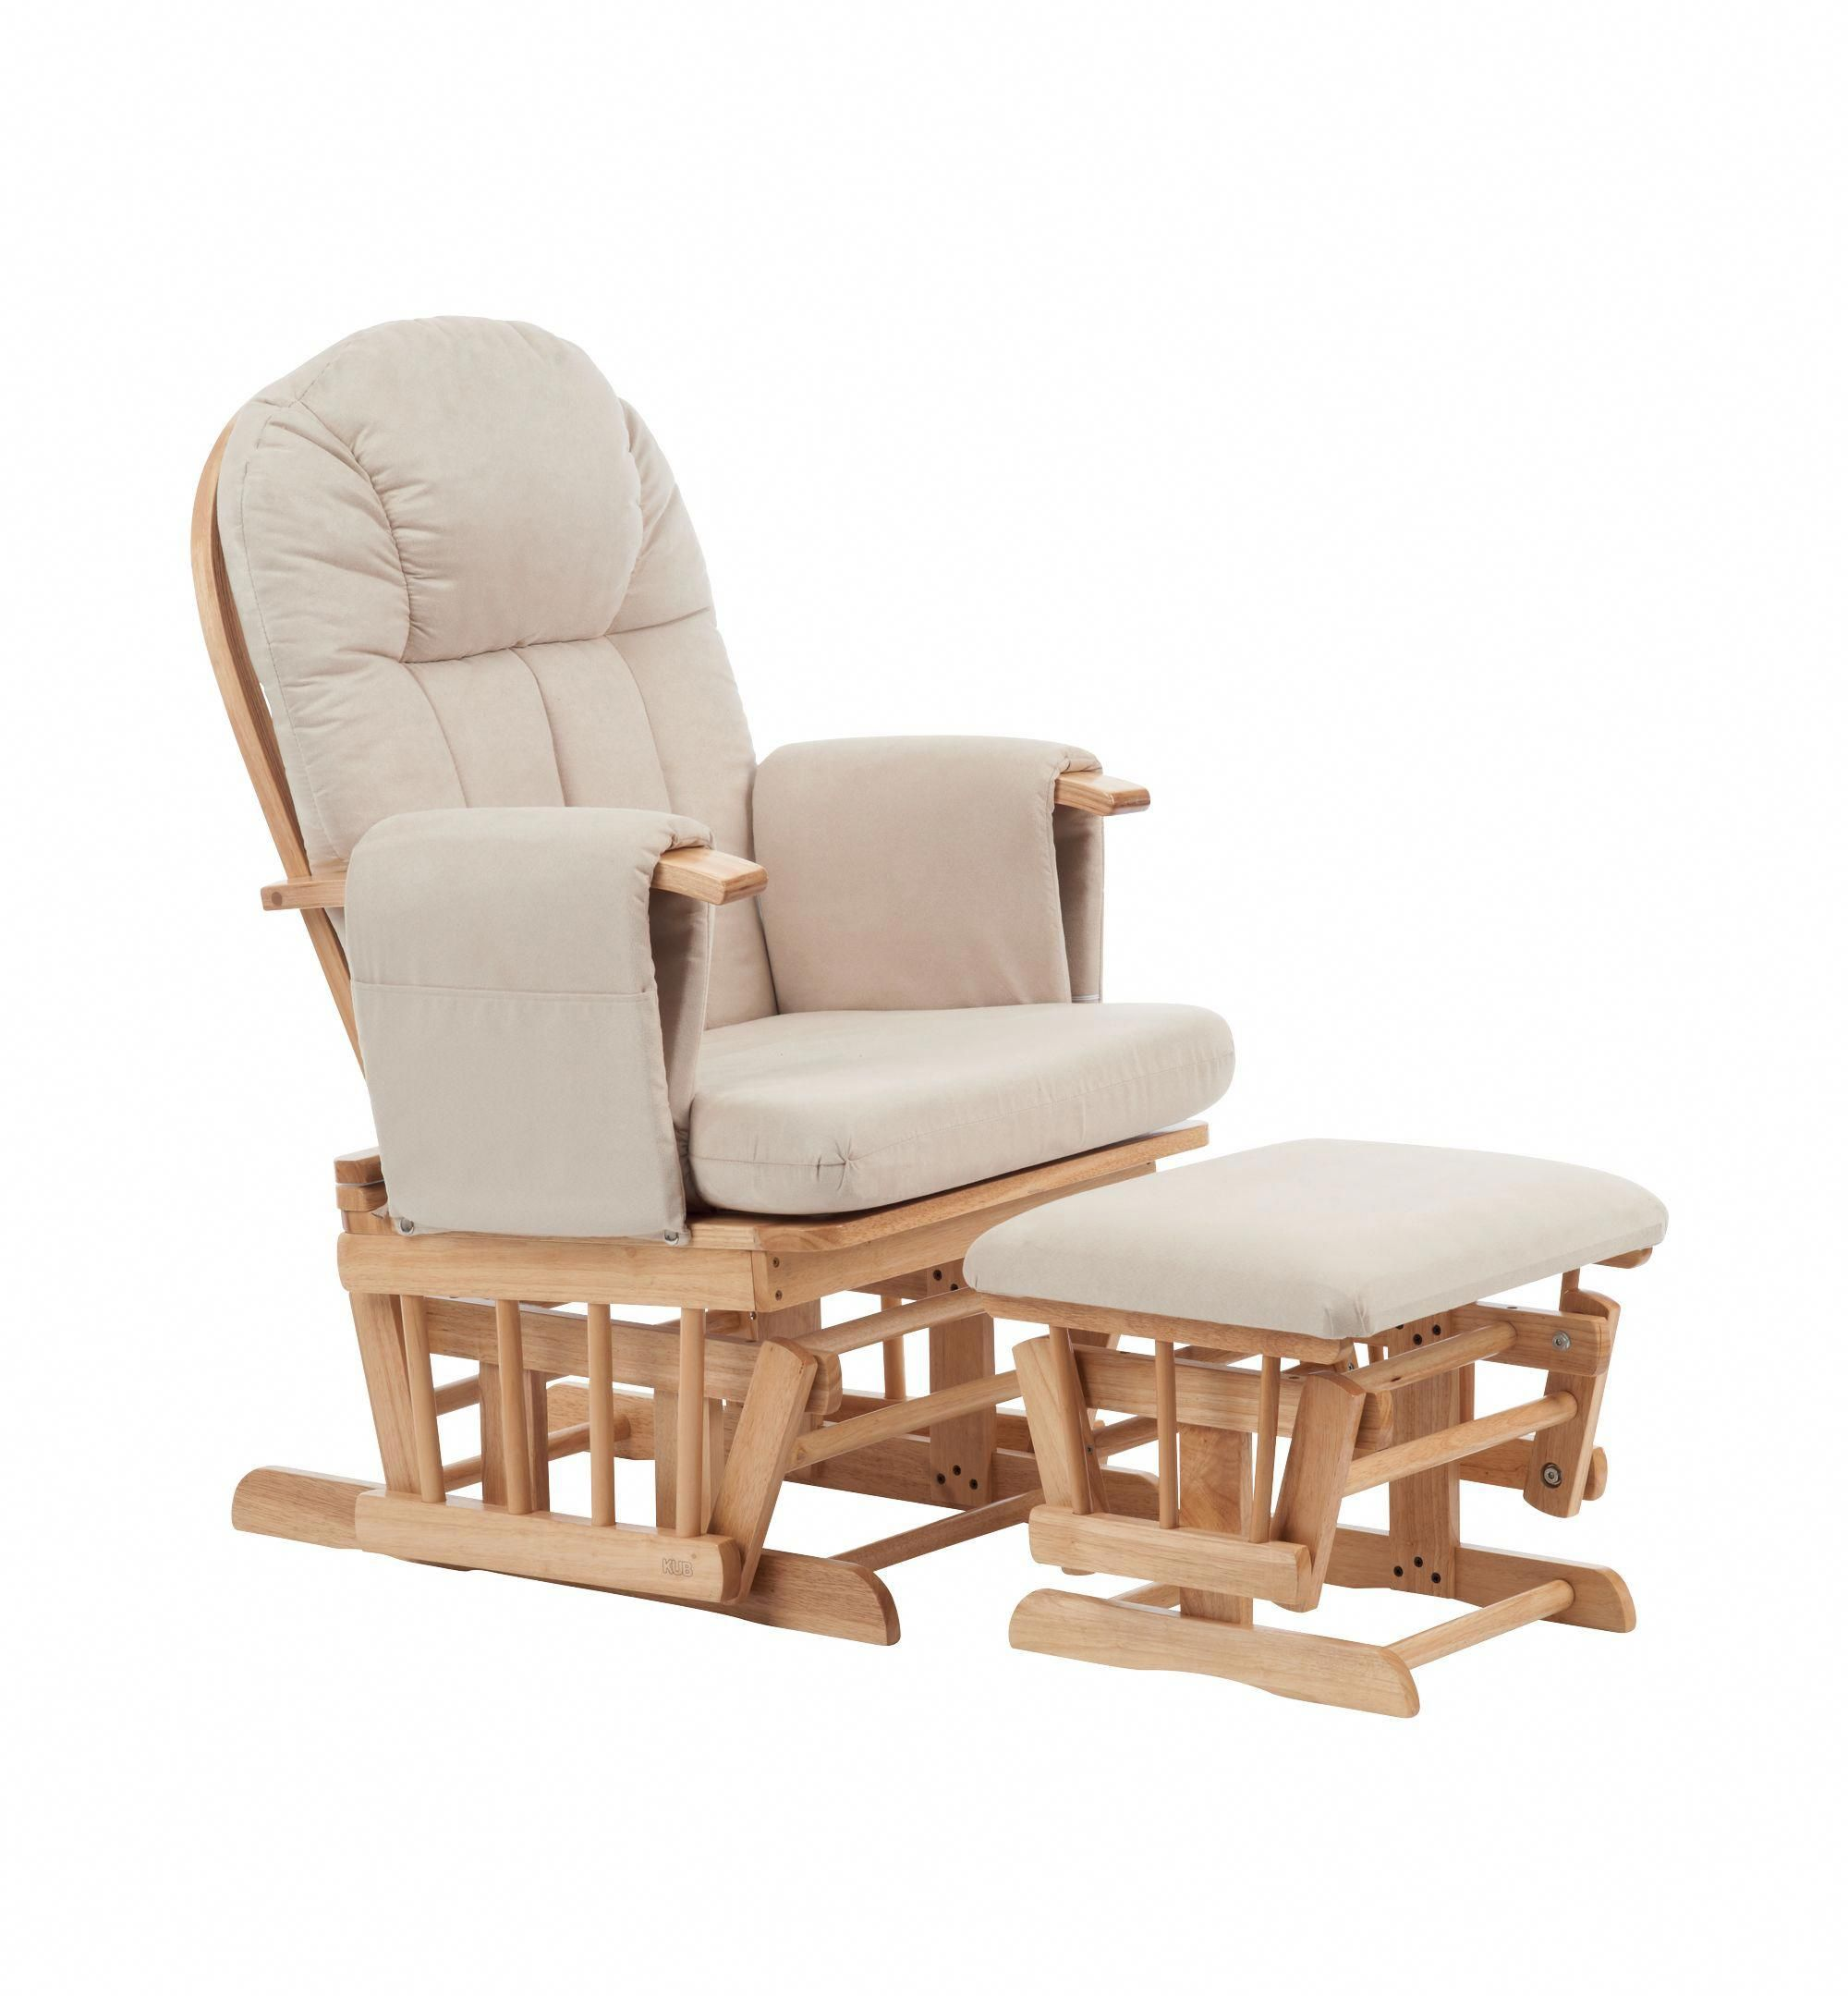 Incredible Mothercare Natural Reclining Glider Chair With Beige Cushion Creativecarmelina Interior Chair Design Creativecarmelinacom